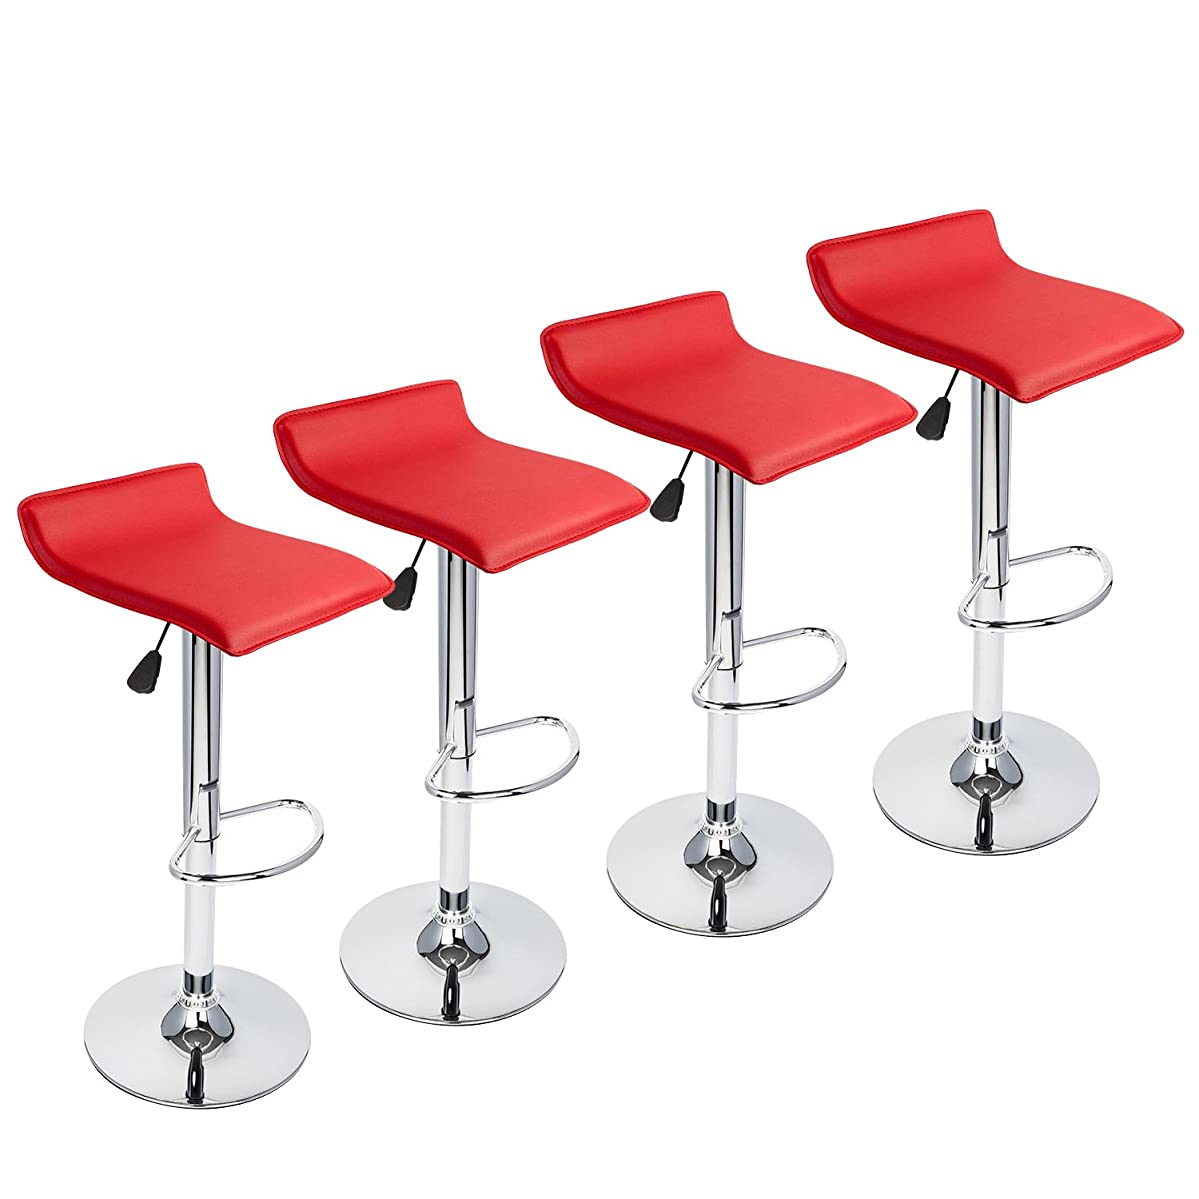 Red Bar Stools Set of 4,Hydraulic Adjustable Swivel Bartools with Contemporary Chrome PU Leather